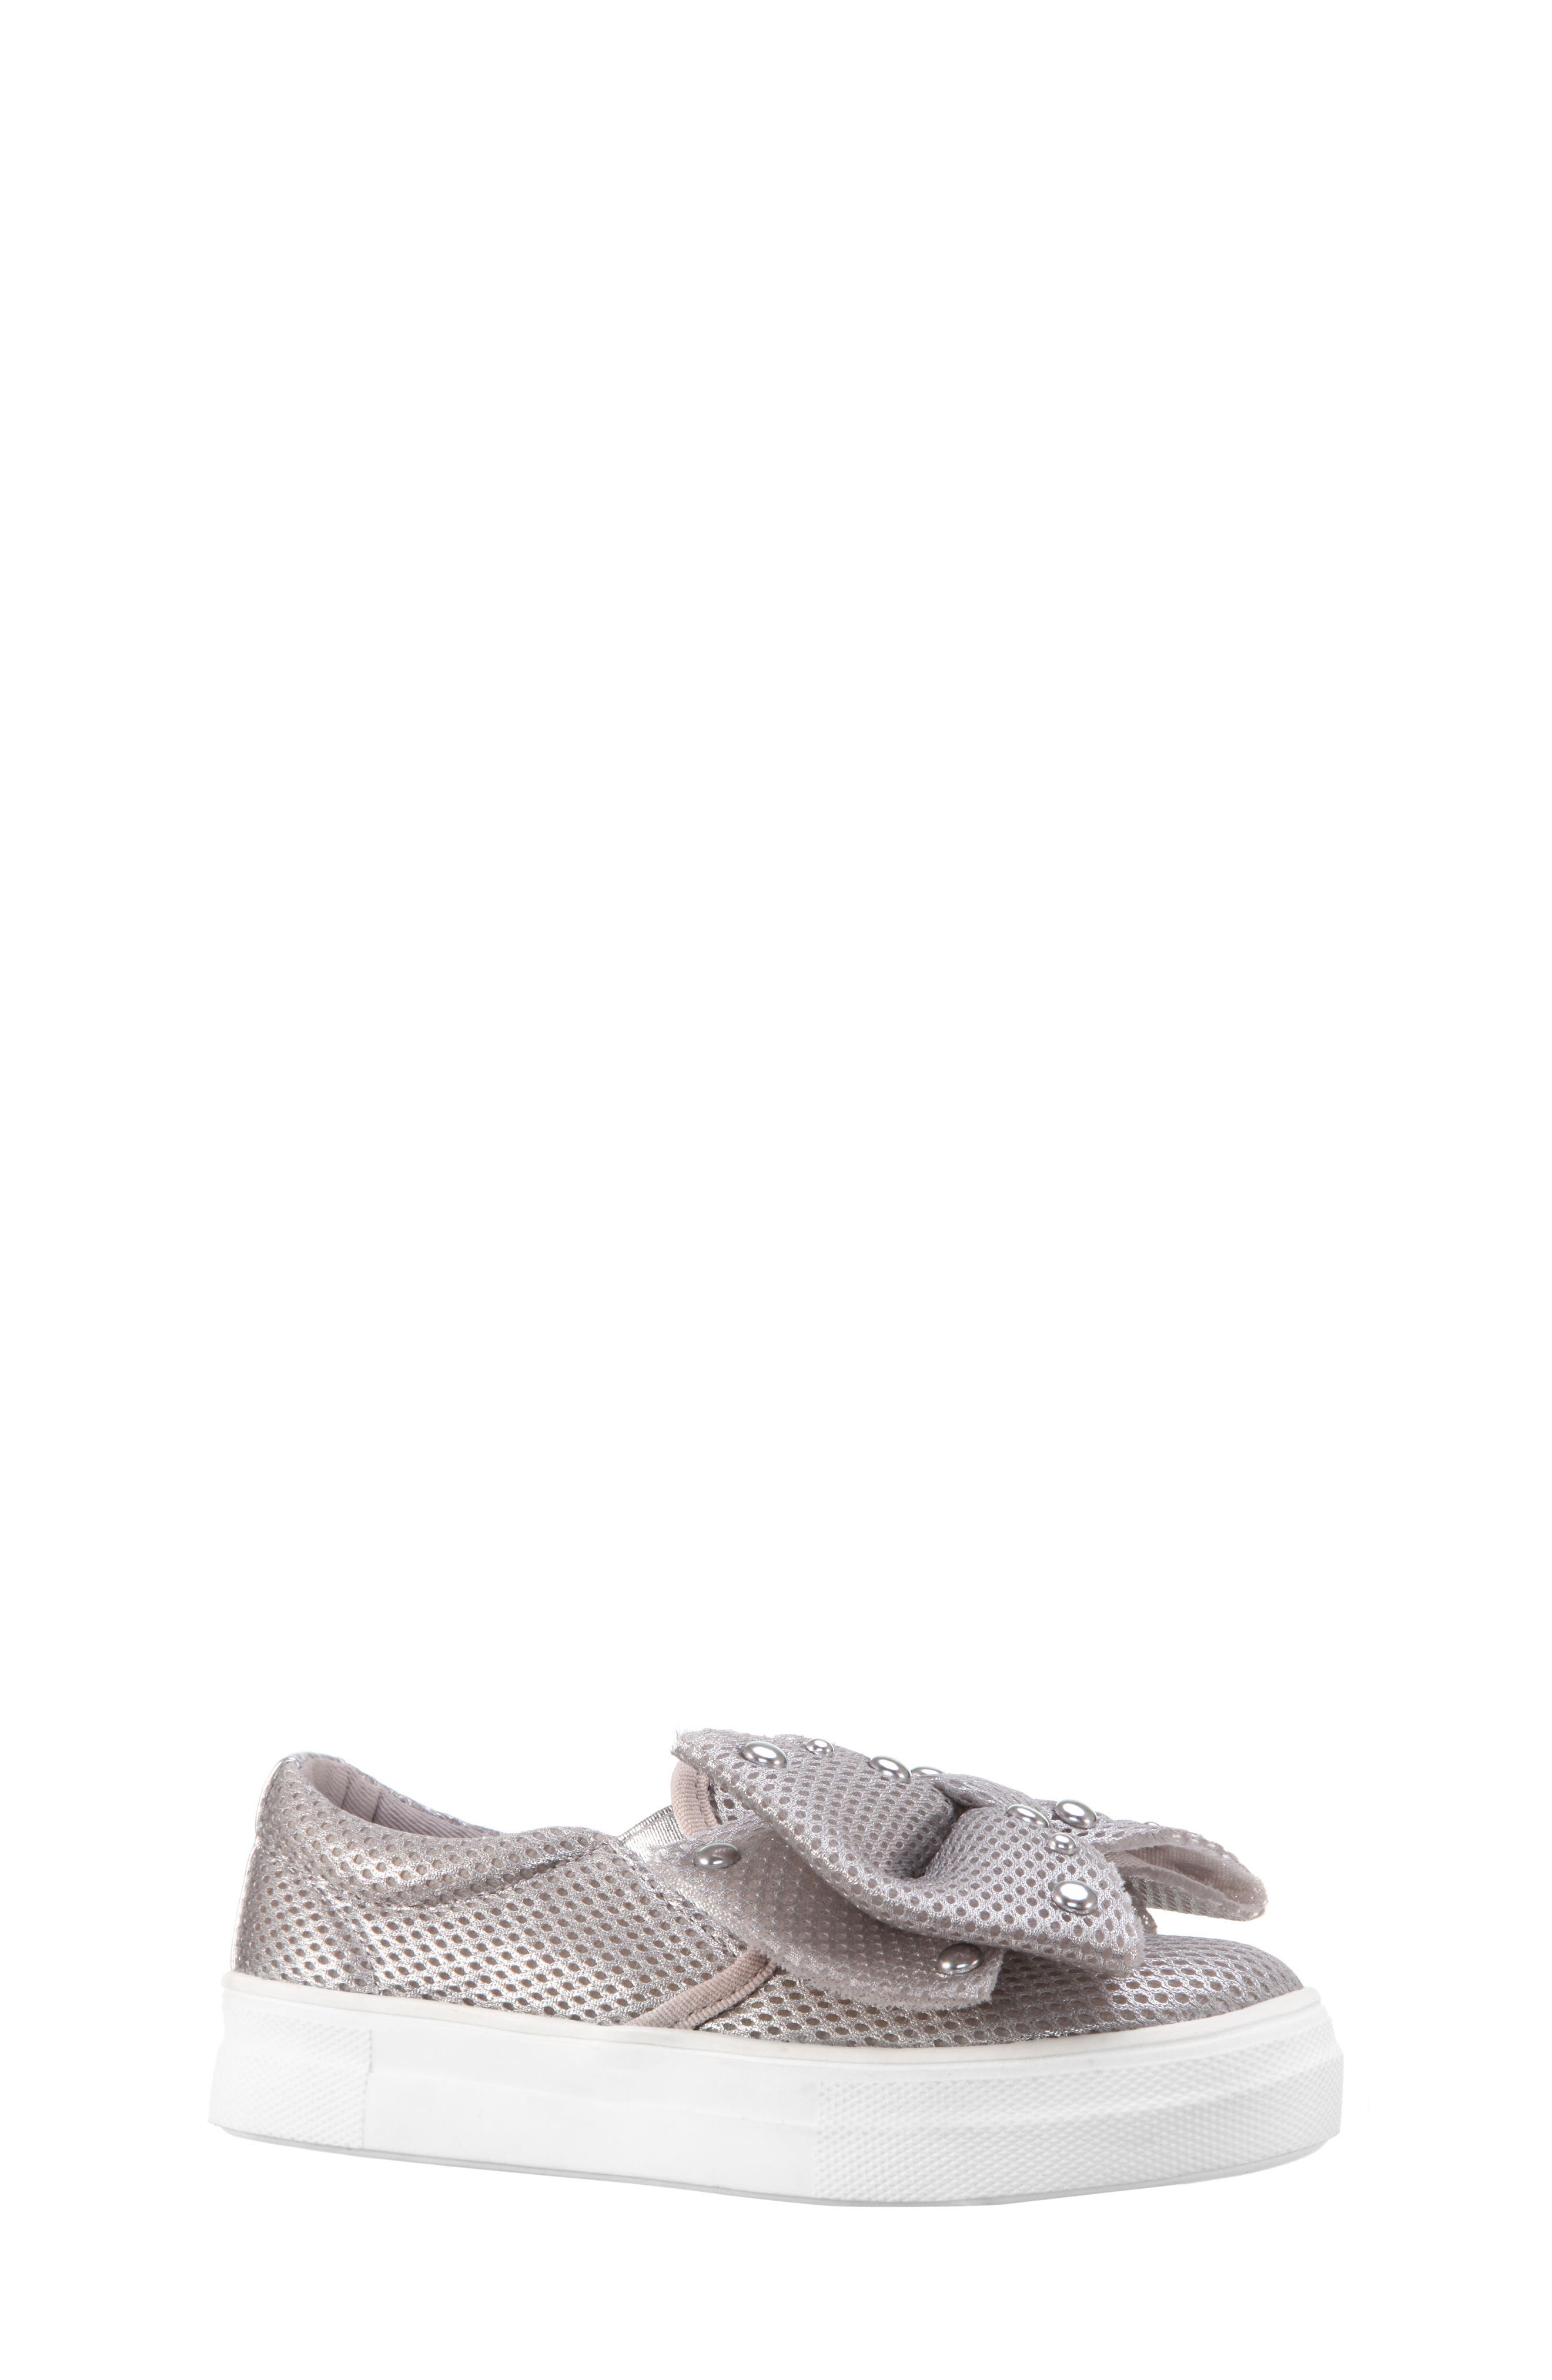 Mary Bow Slip-On Sneaker,                         Main,                         color, 040